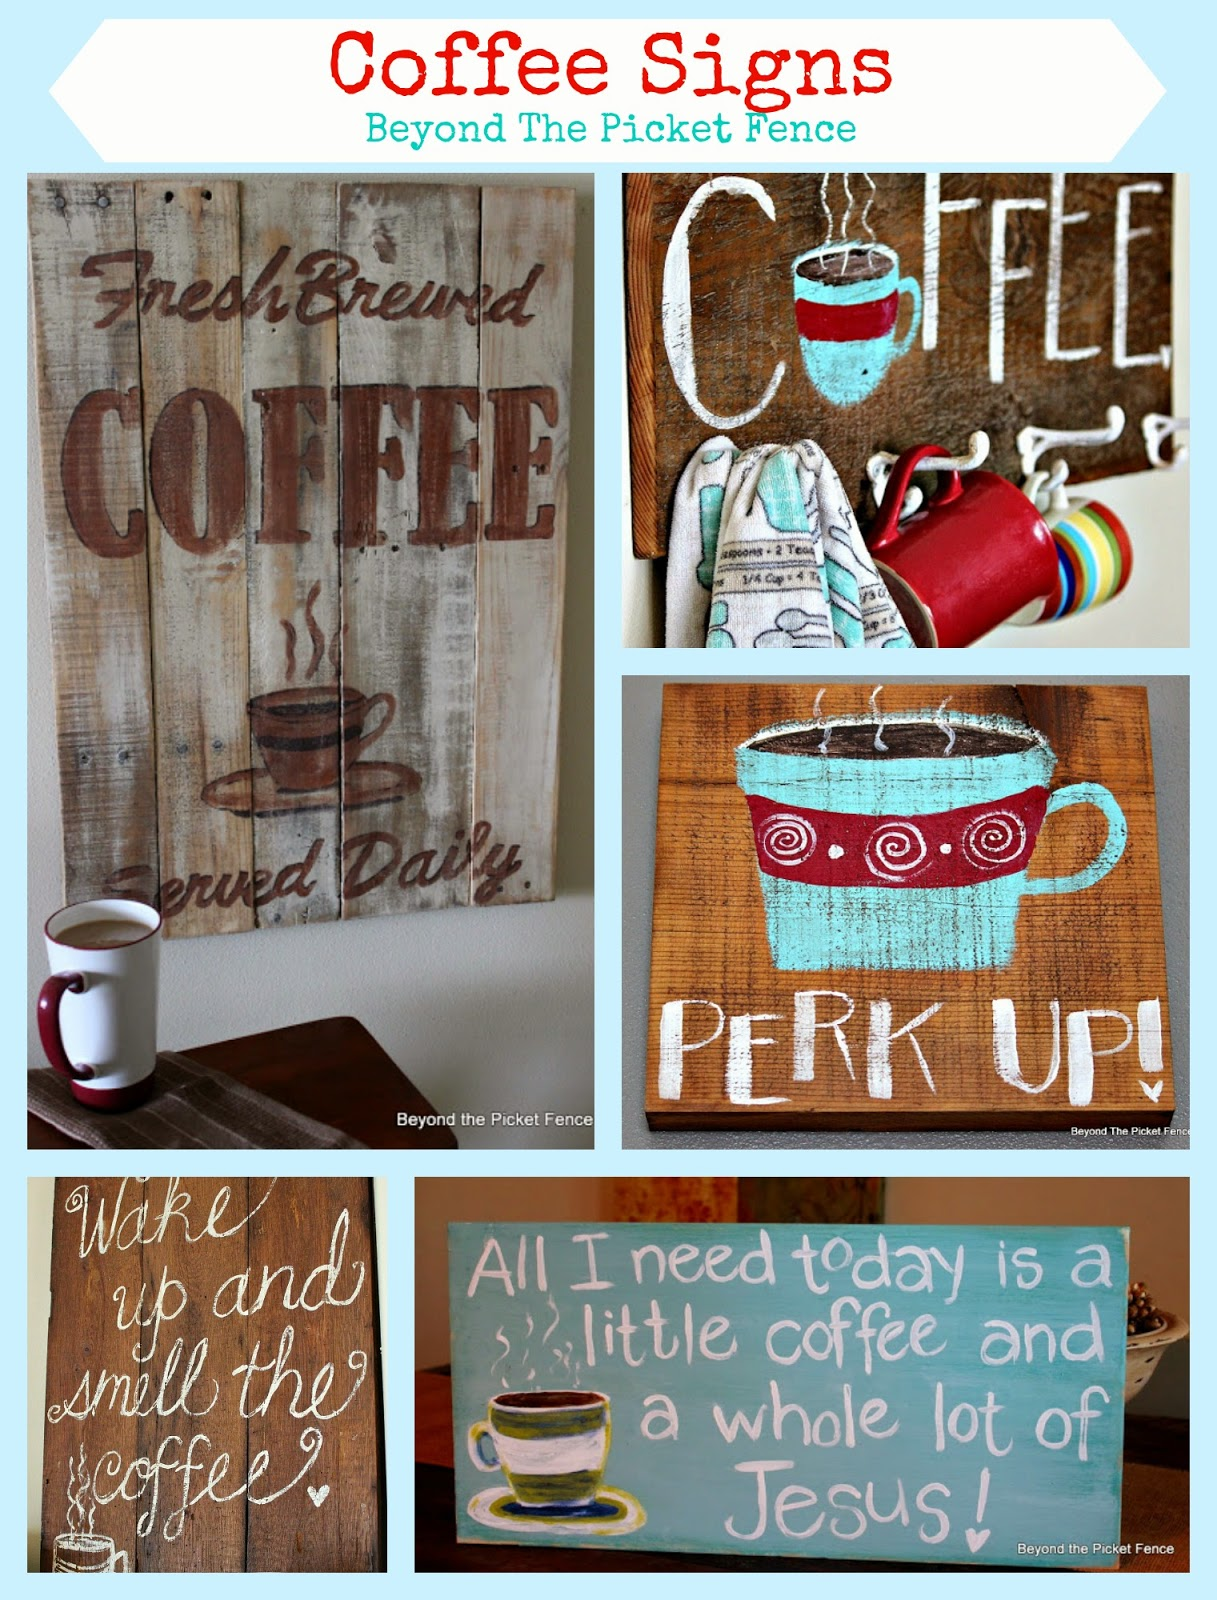 coffee, sign, hand-lettered, reclaimed wood, perk up, Beyond The Picket Fence, http://bec4-beyondthepicketfence.blogspot.com/2015/02/coffee-culture.html